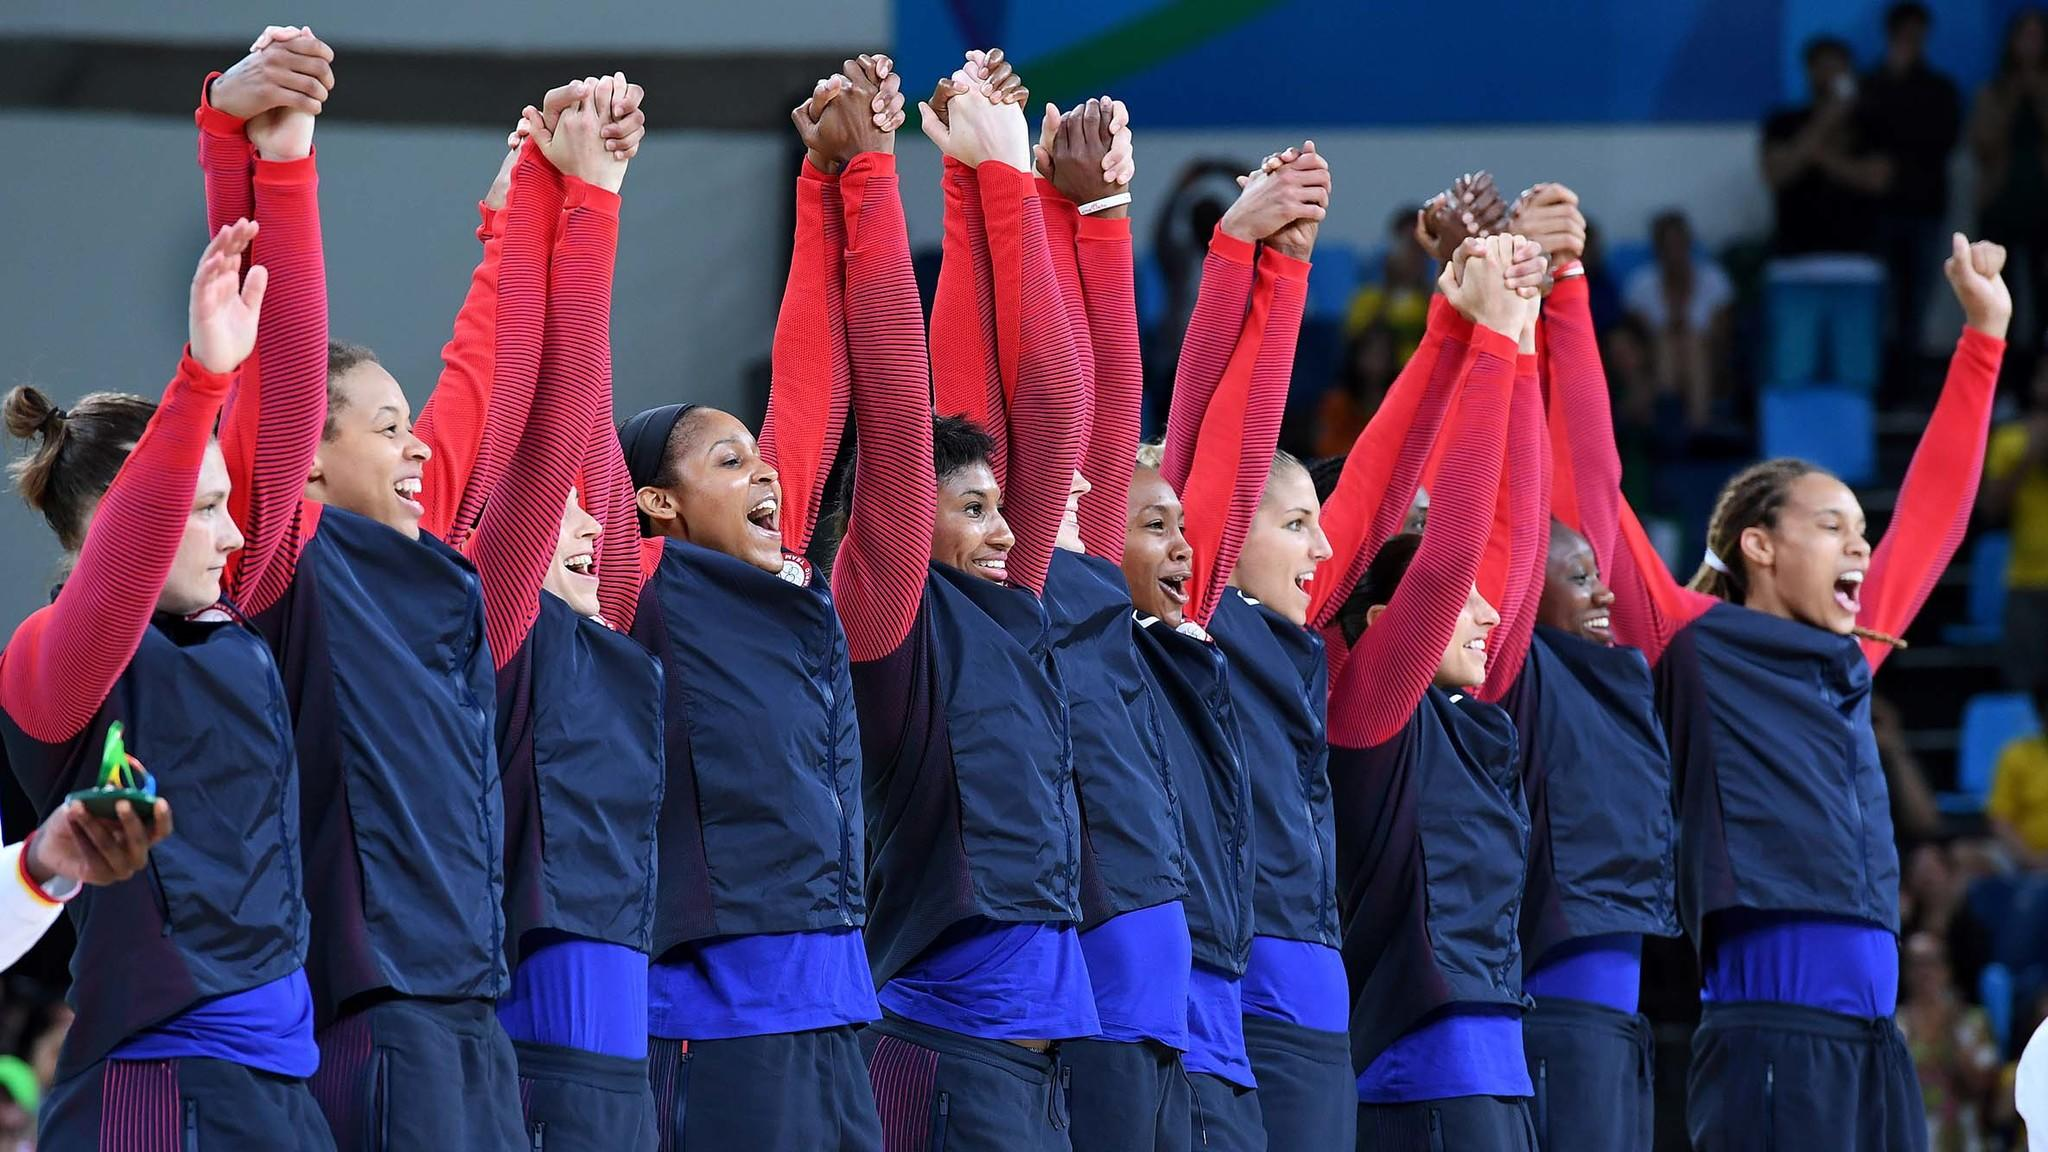 The U.S. women's basketball team celebrates after beating Spain for the gold medal. (Wally Skalij / Los Angeles Times)